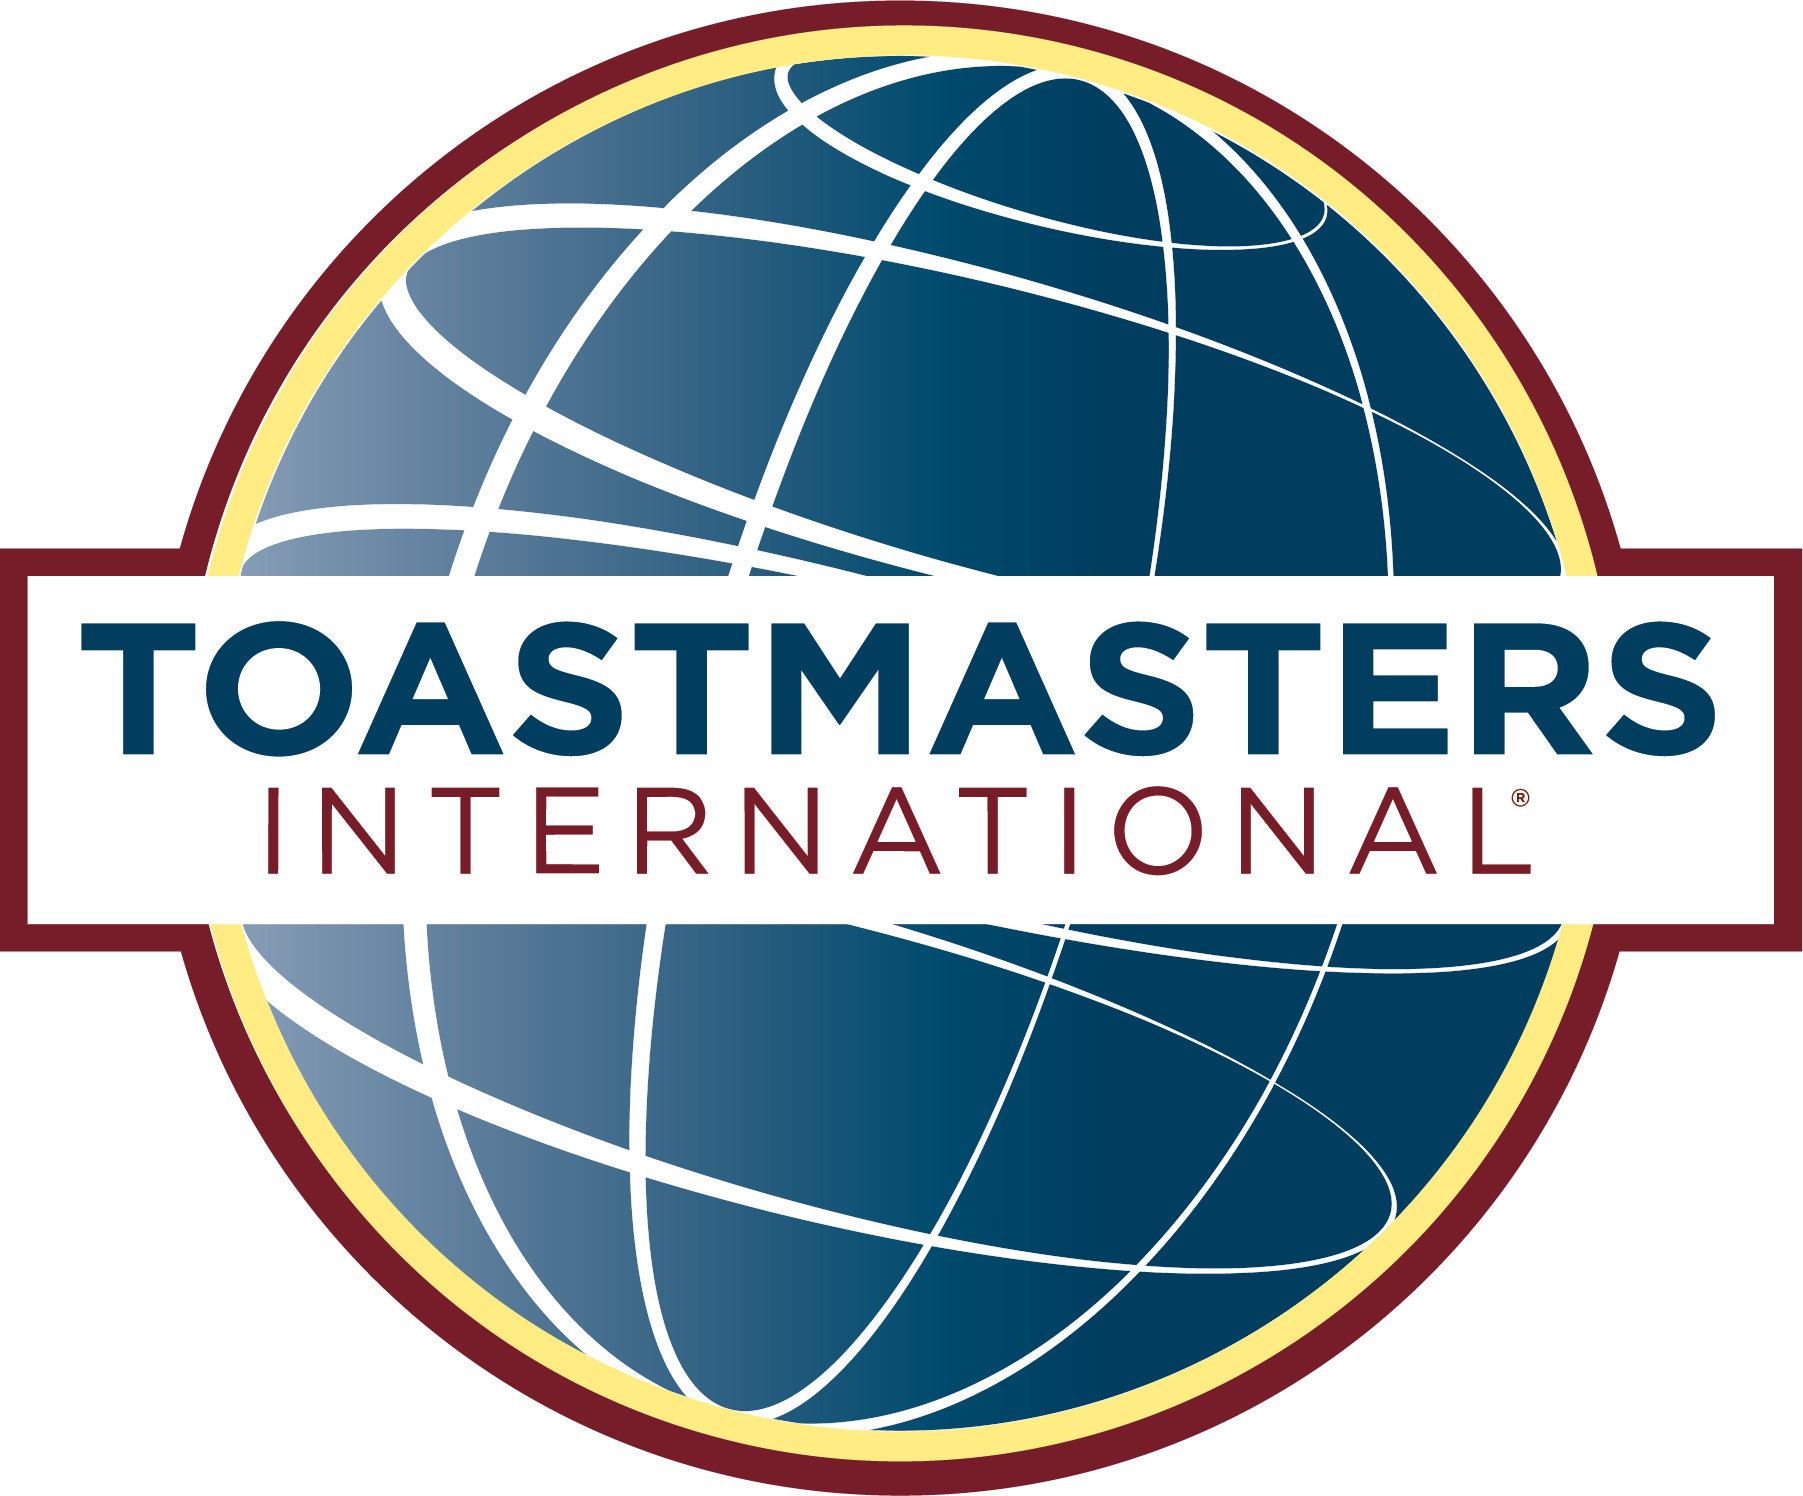 Toastmasters: Toasting At The Tide